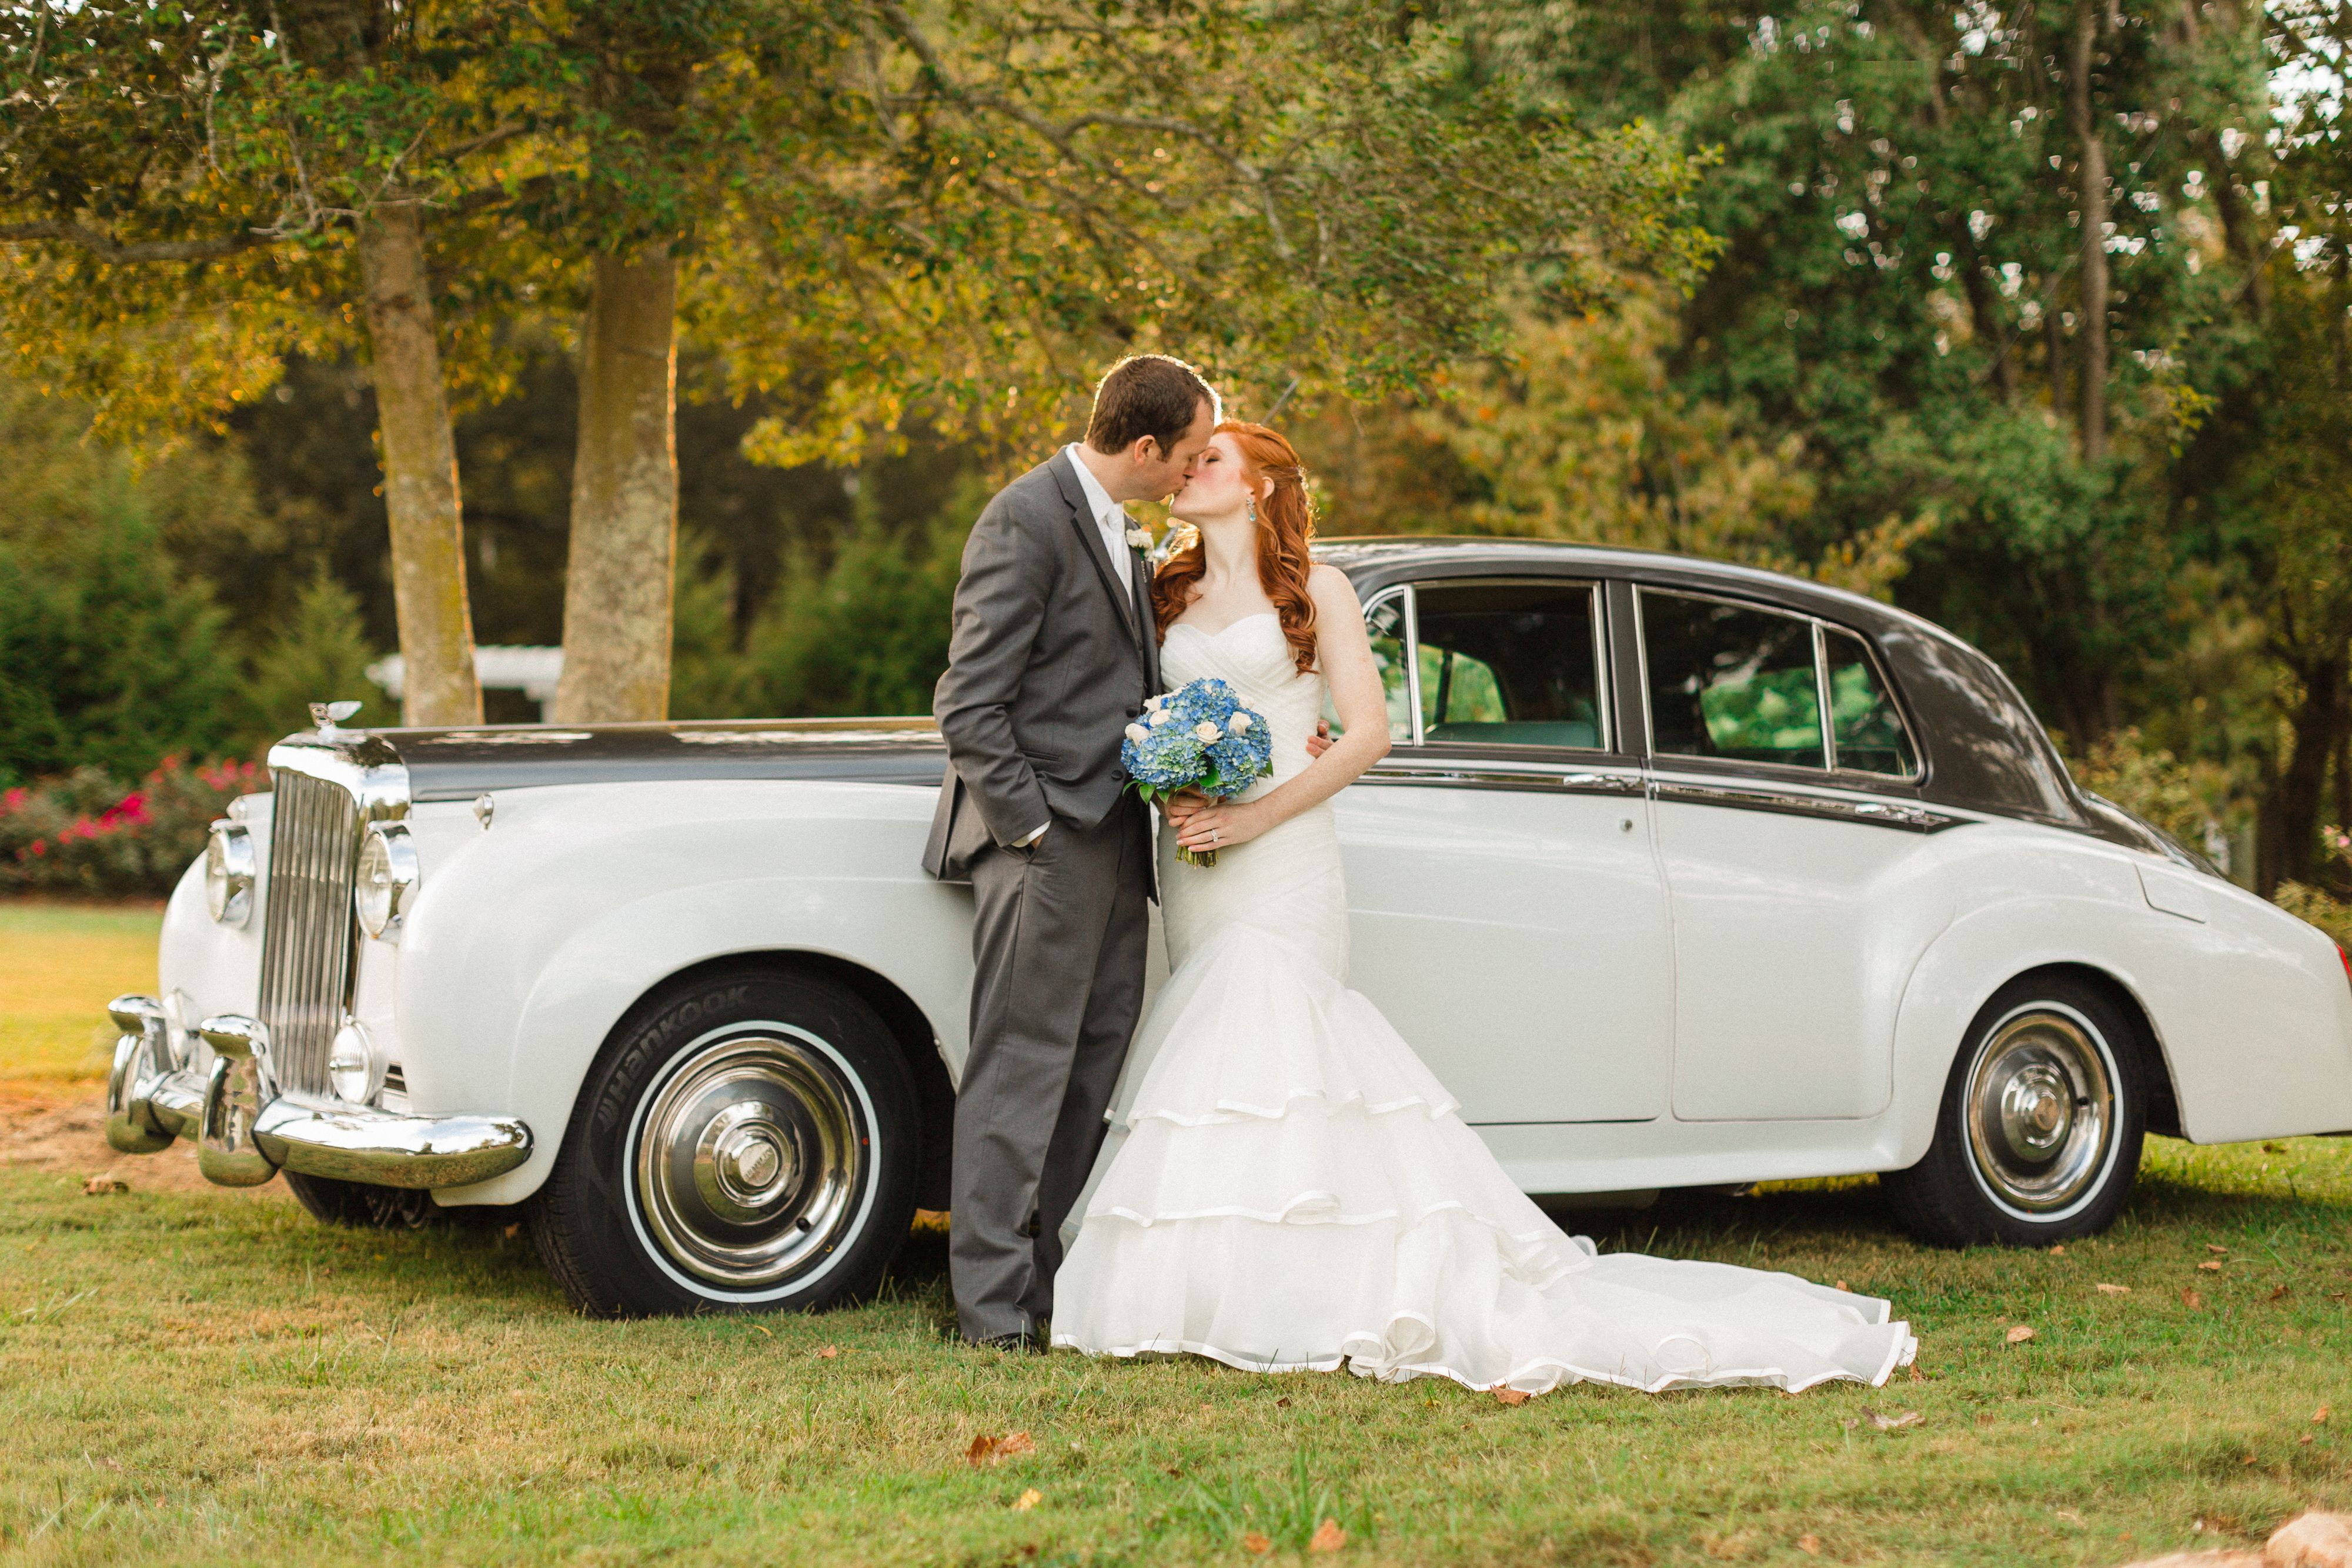 October wedding with a classic car provided by Regal Carriage in Knoxville, TN.